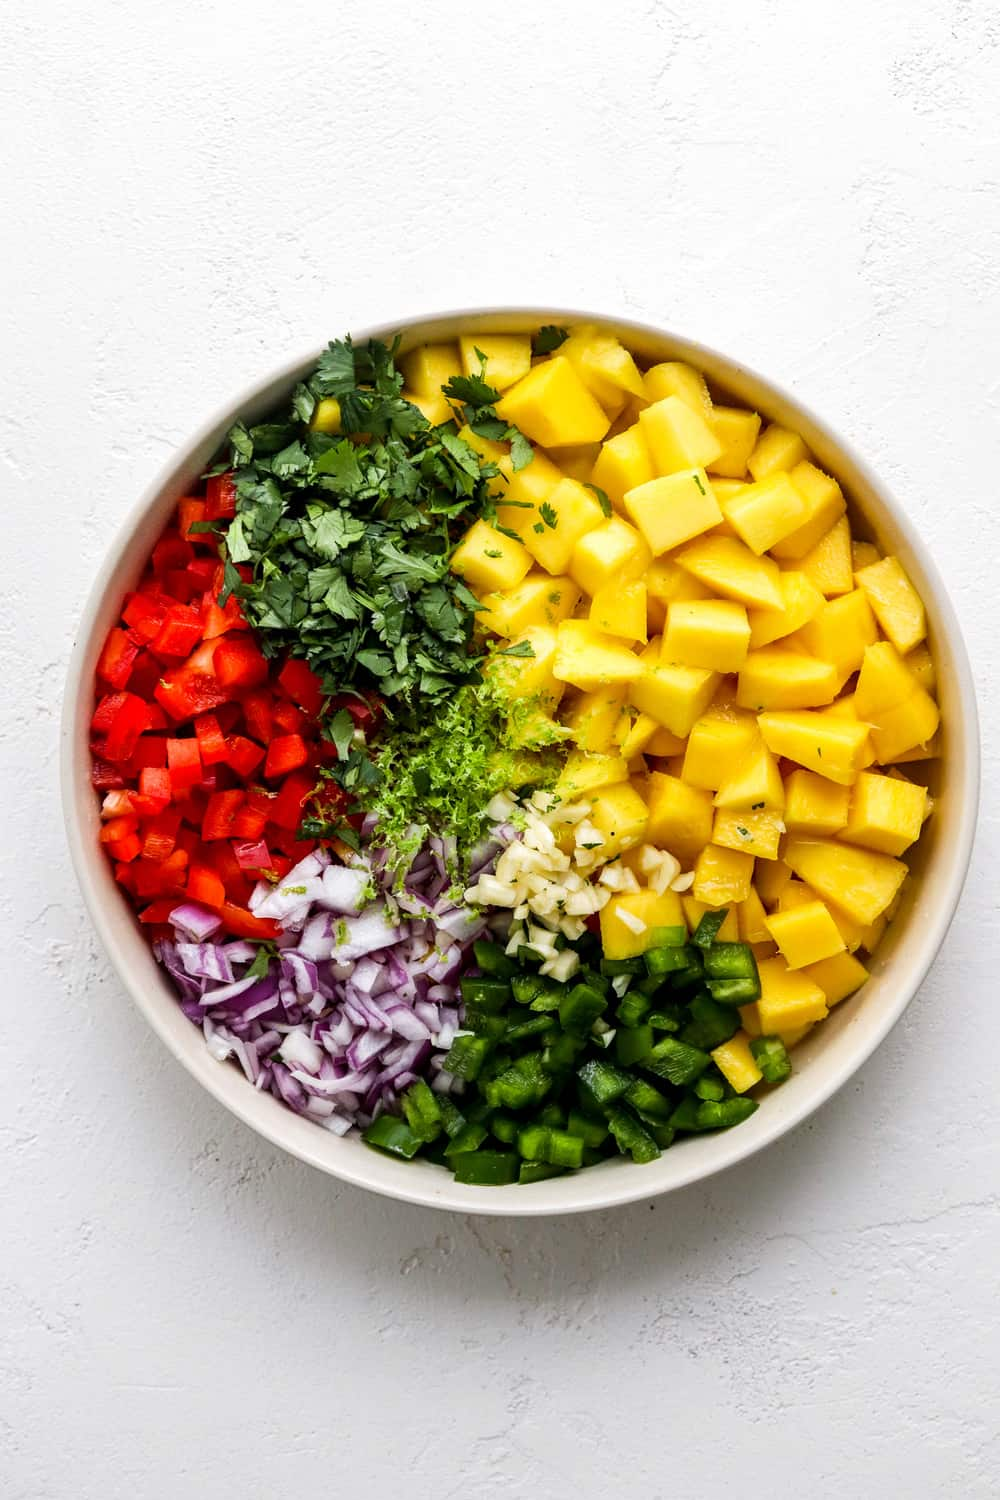 Round bowl filled with chopped mango, red pepper, green pepper, purple onion and cilantro separated in the bowl